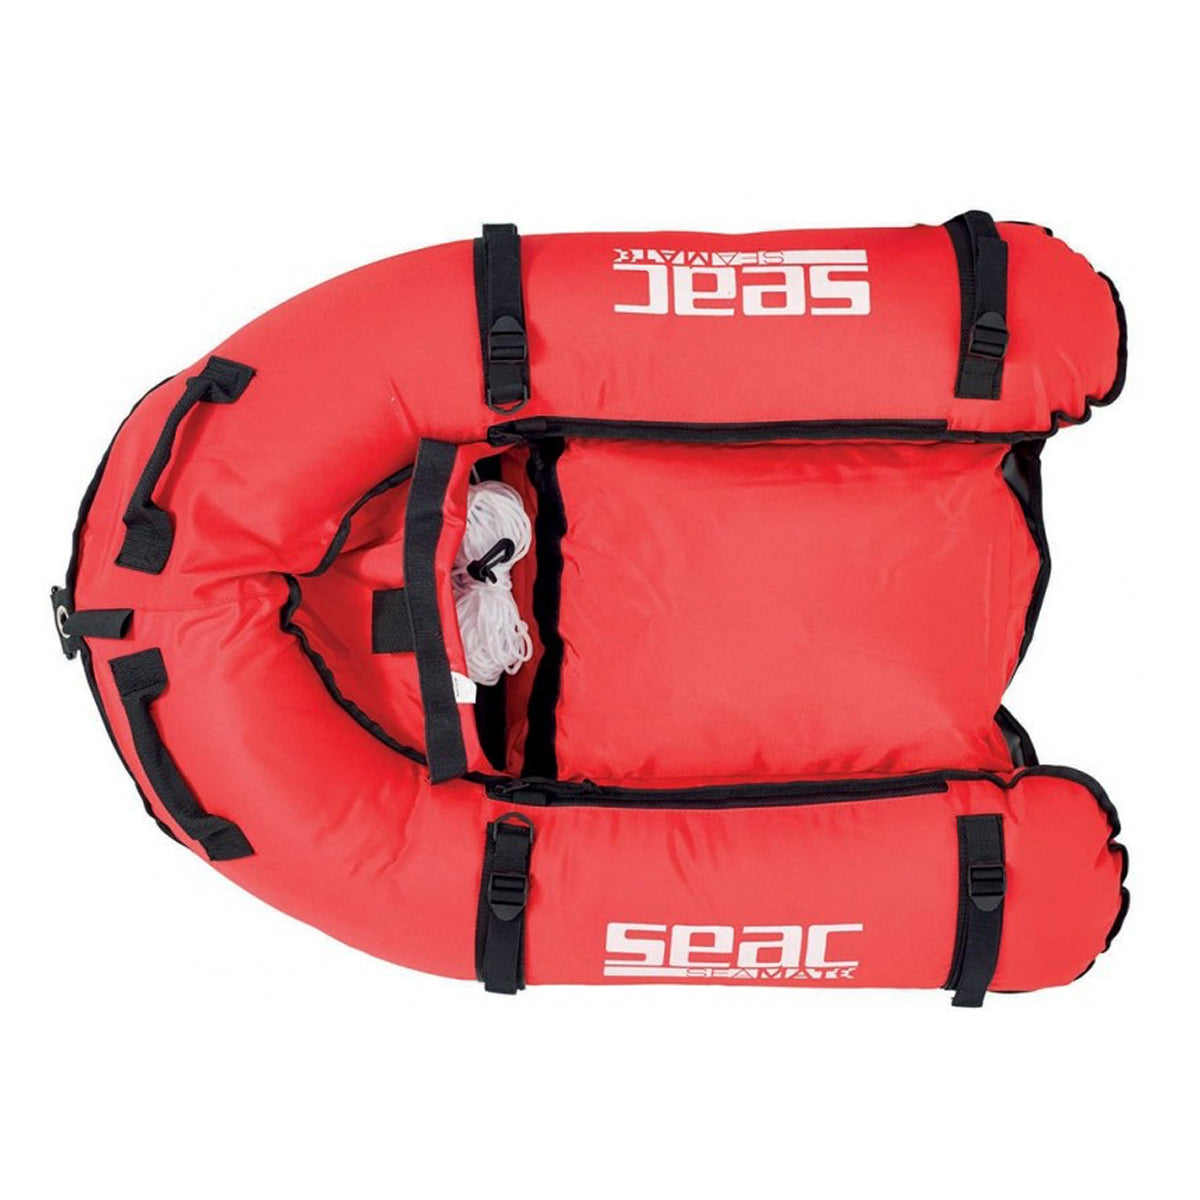 Seac SeaMate inflatable Board - Top view